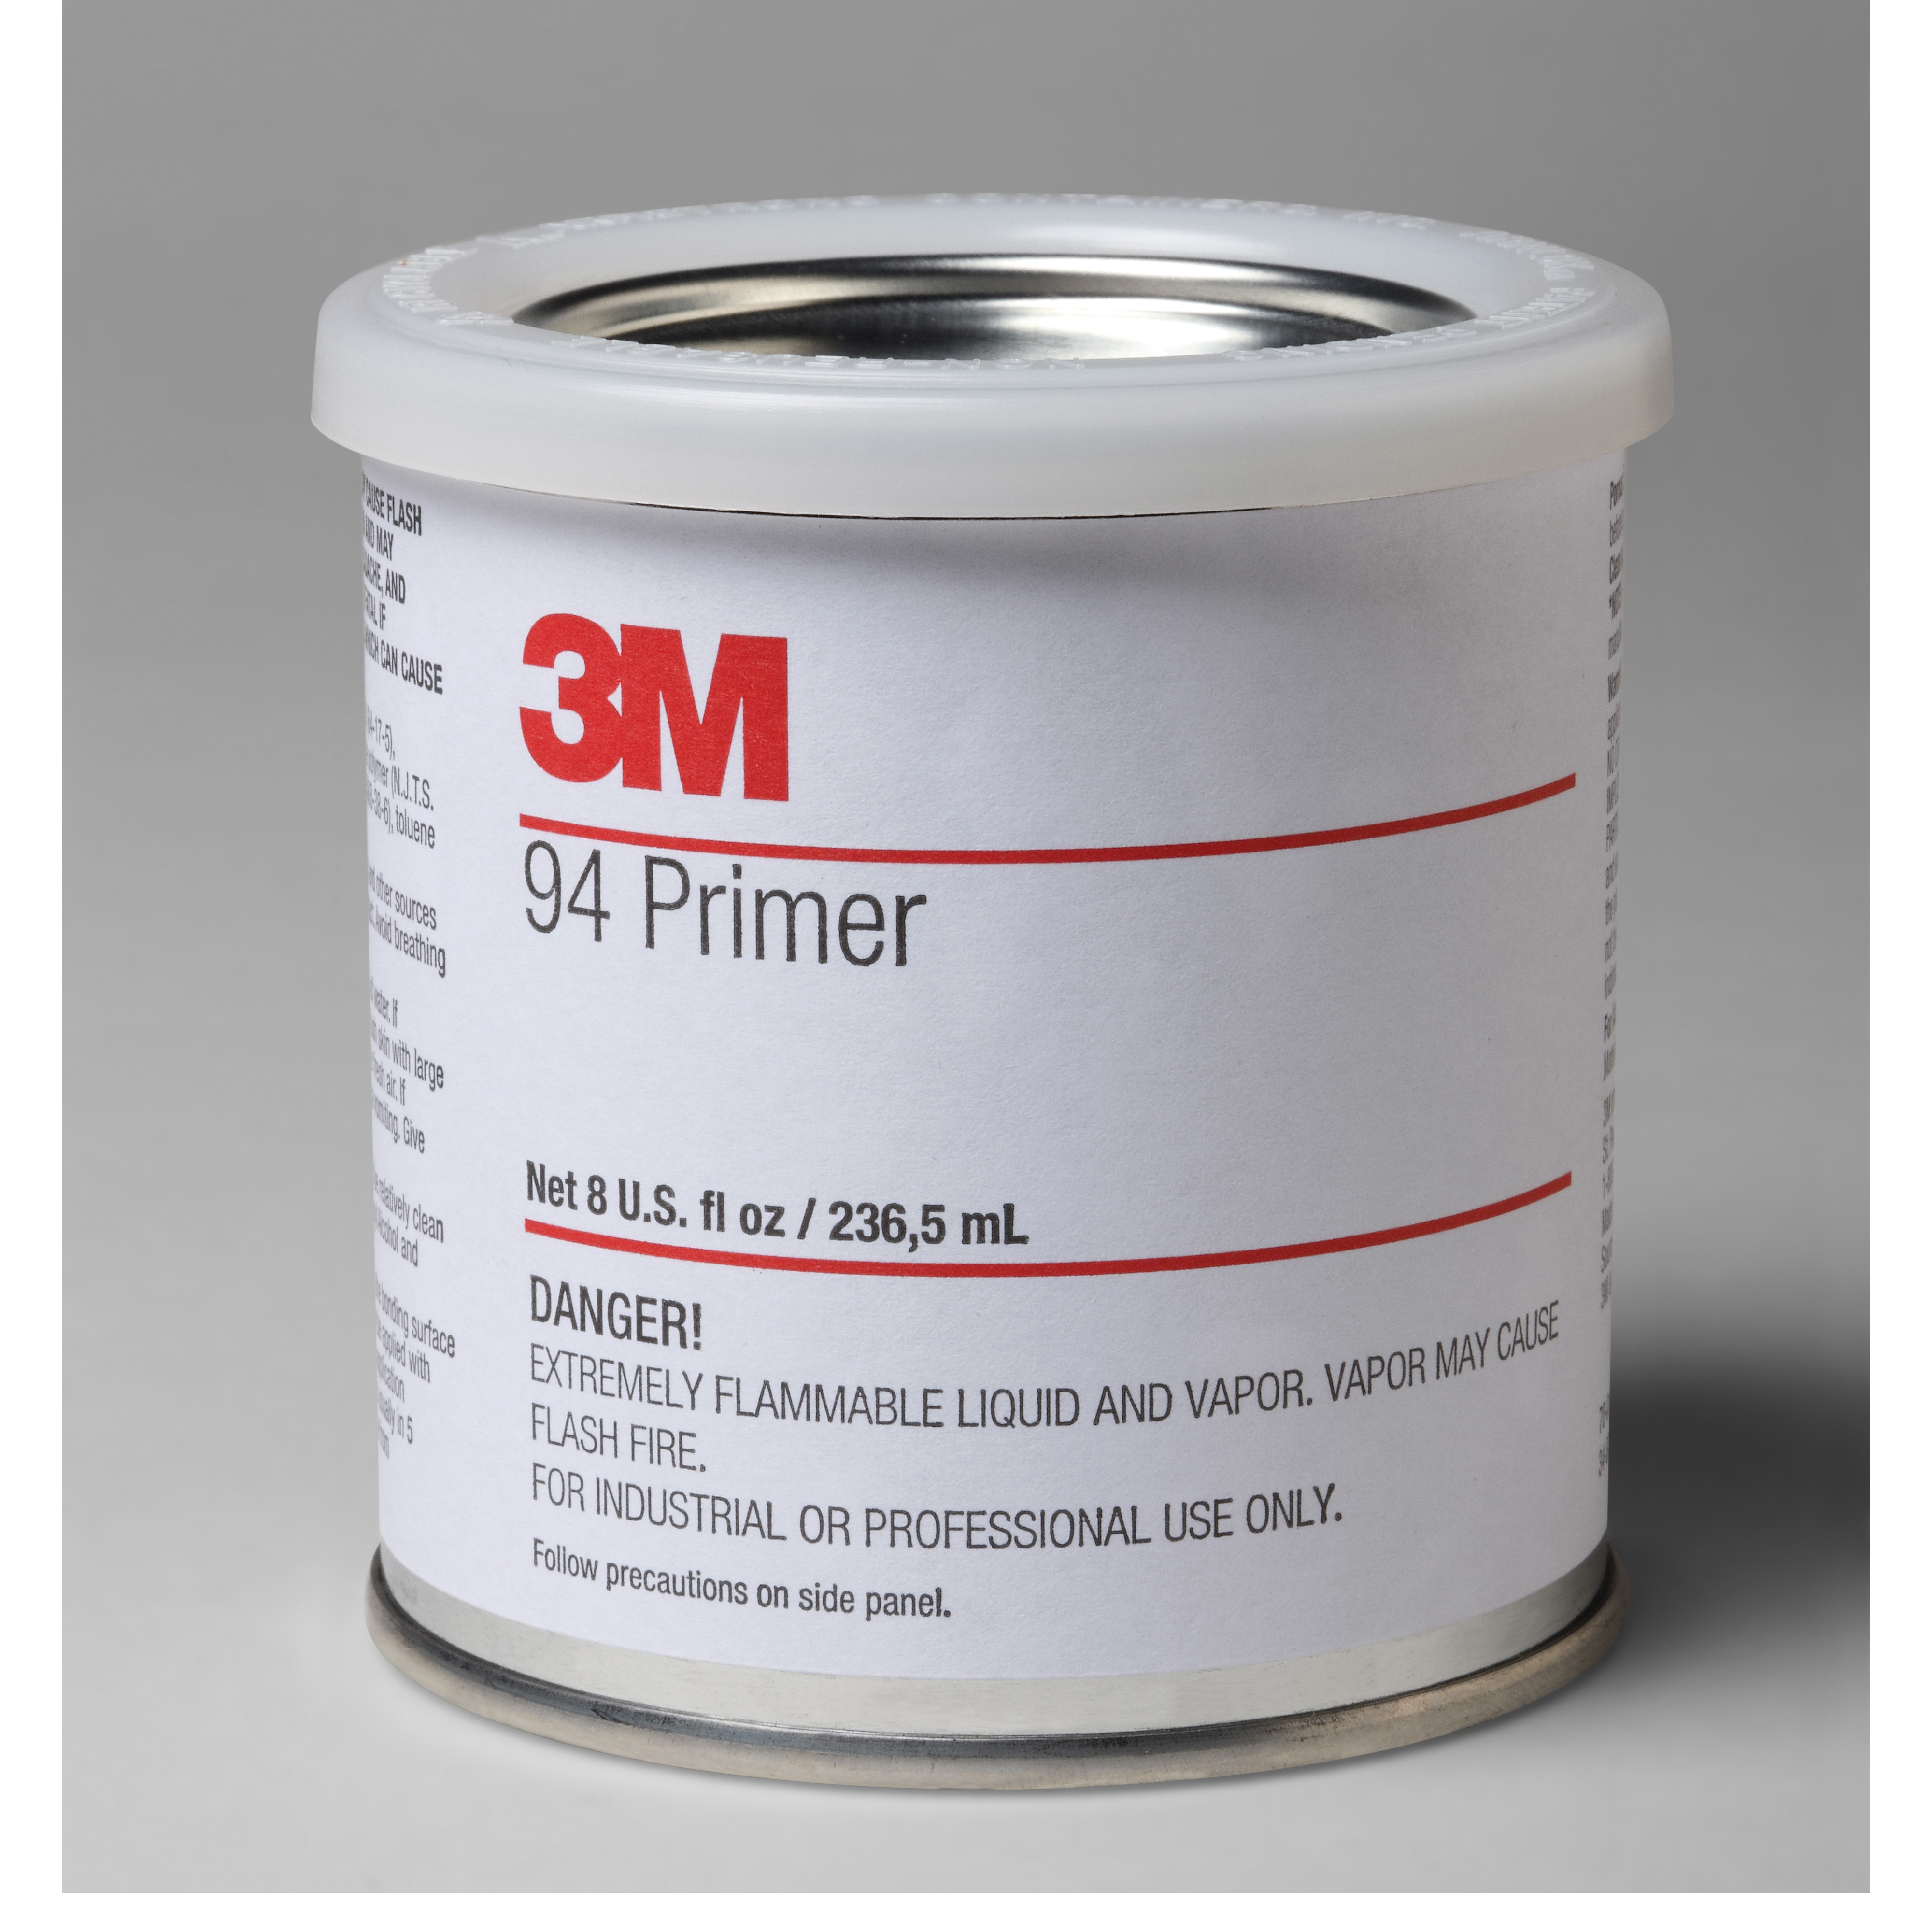 3M™ 021200-19813 1099 High Performance Medium Viscosity Plastic Adhesive, 1 gal Can, Liquid Form, White/Pink to Light Tan, 0.89